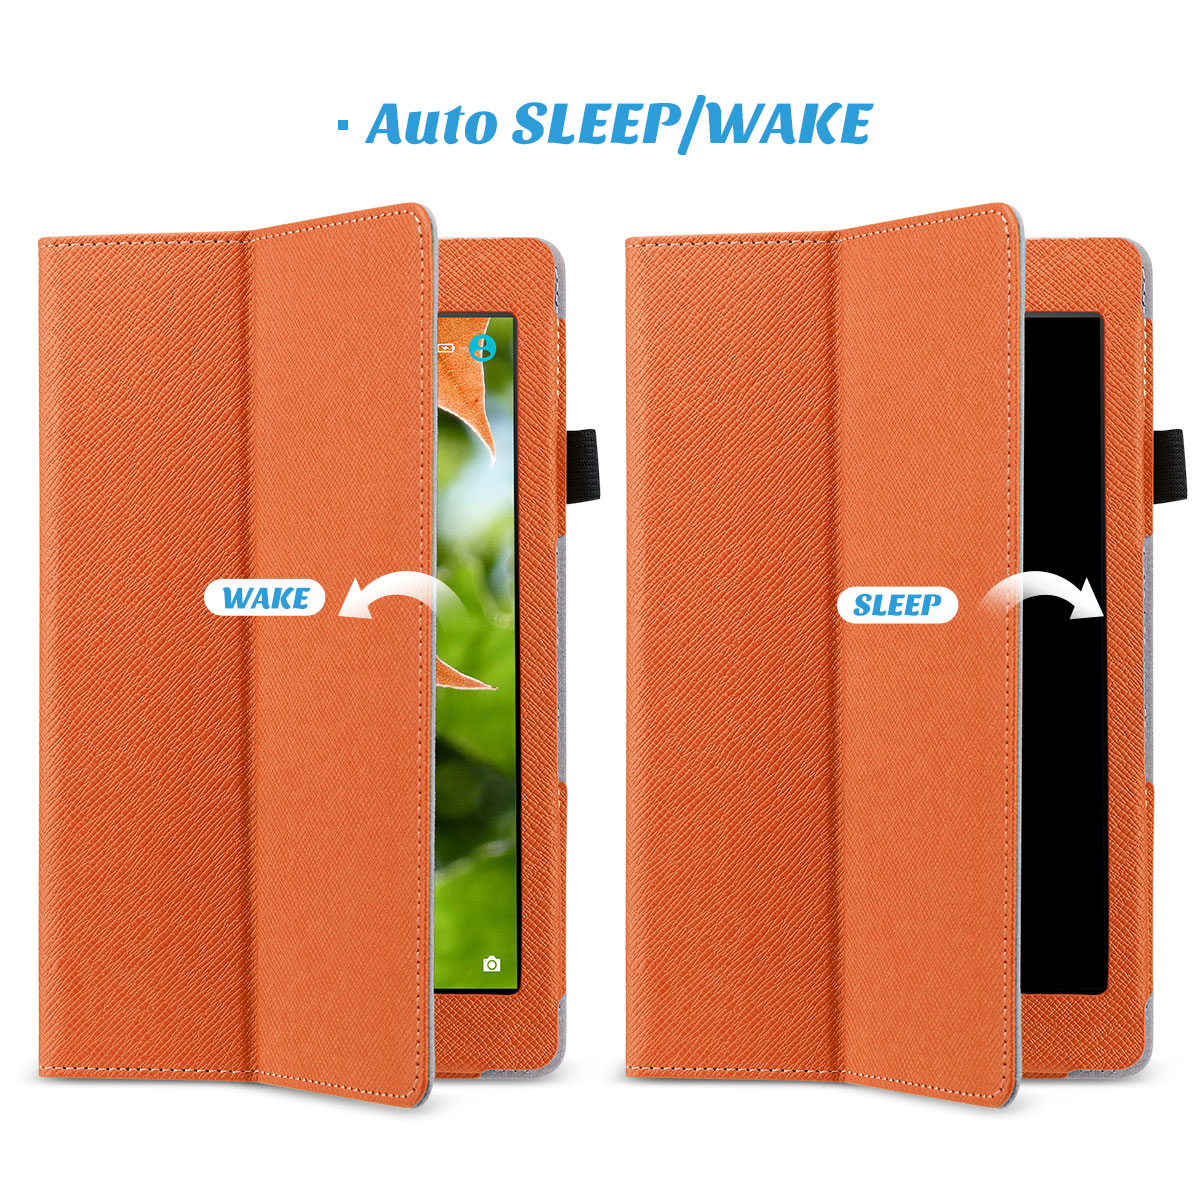 Flip-Wallet-Leather-Case-Cover-For-All-New-Amazon-Fire-HD-8-2016-Release-6th-Gen thumbnail 48